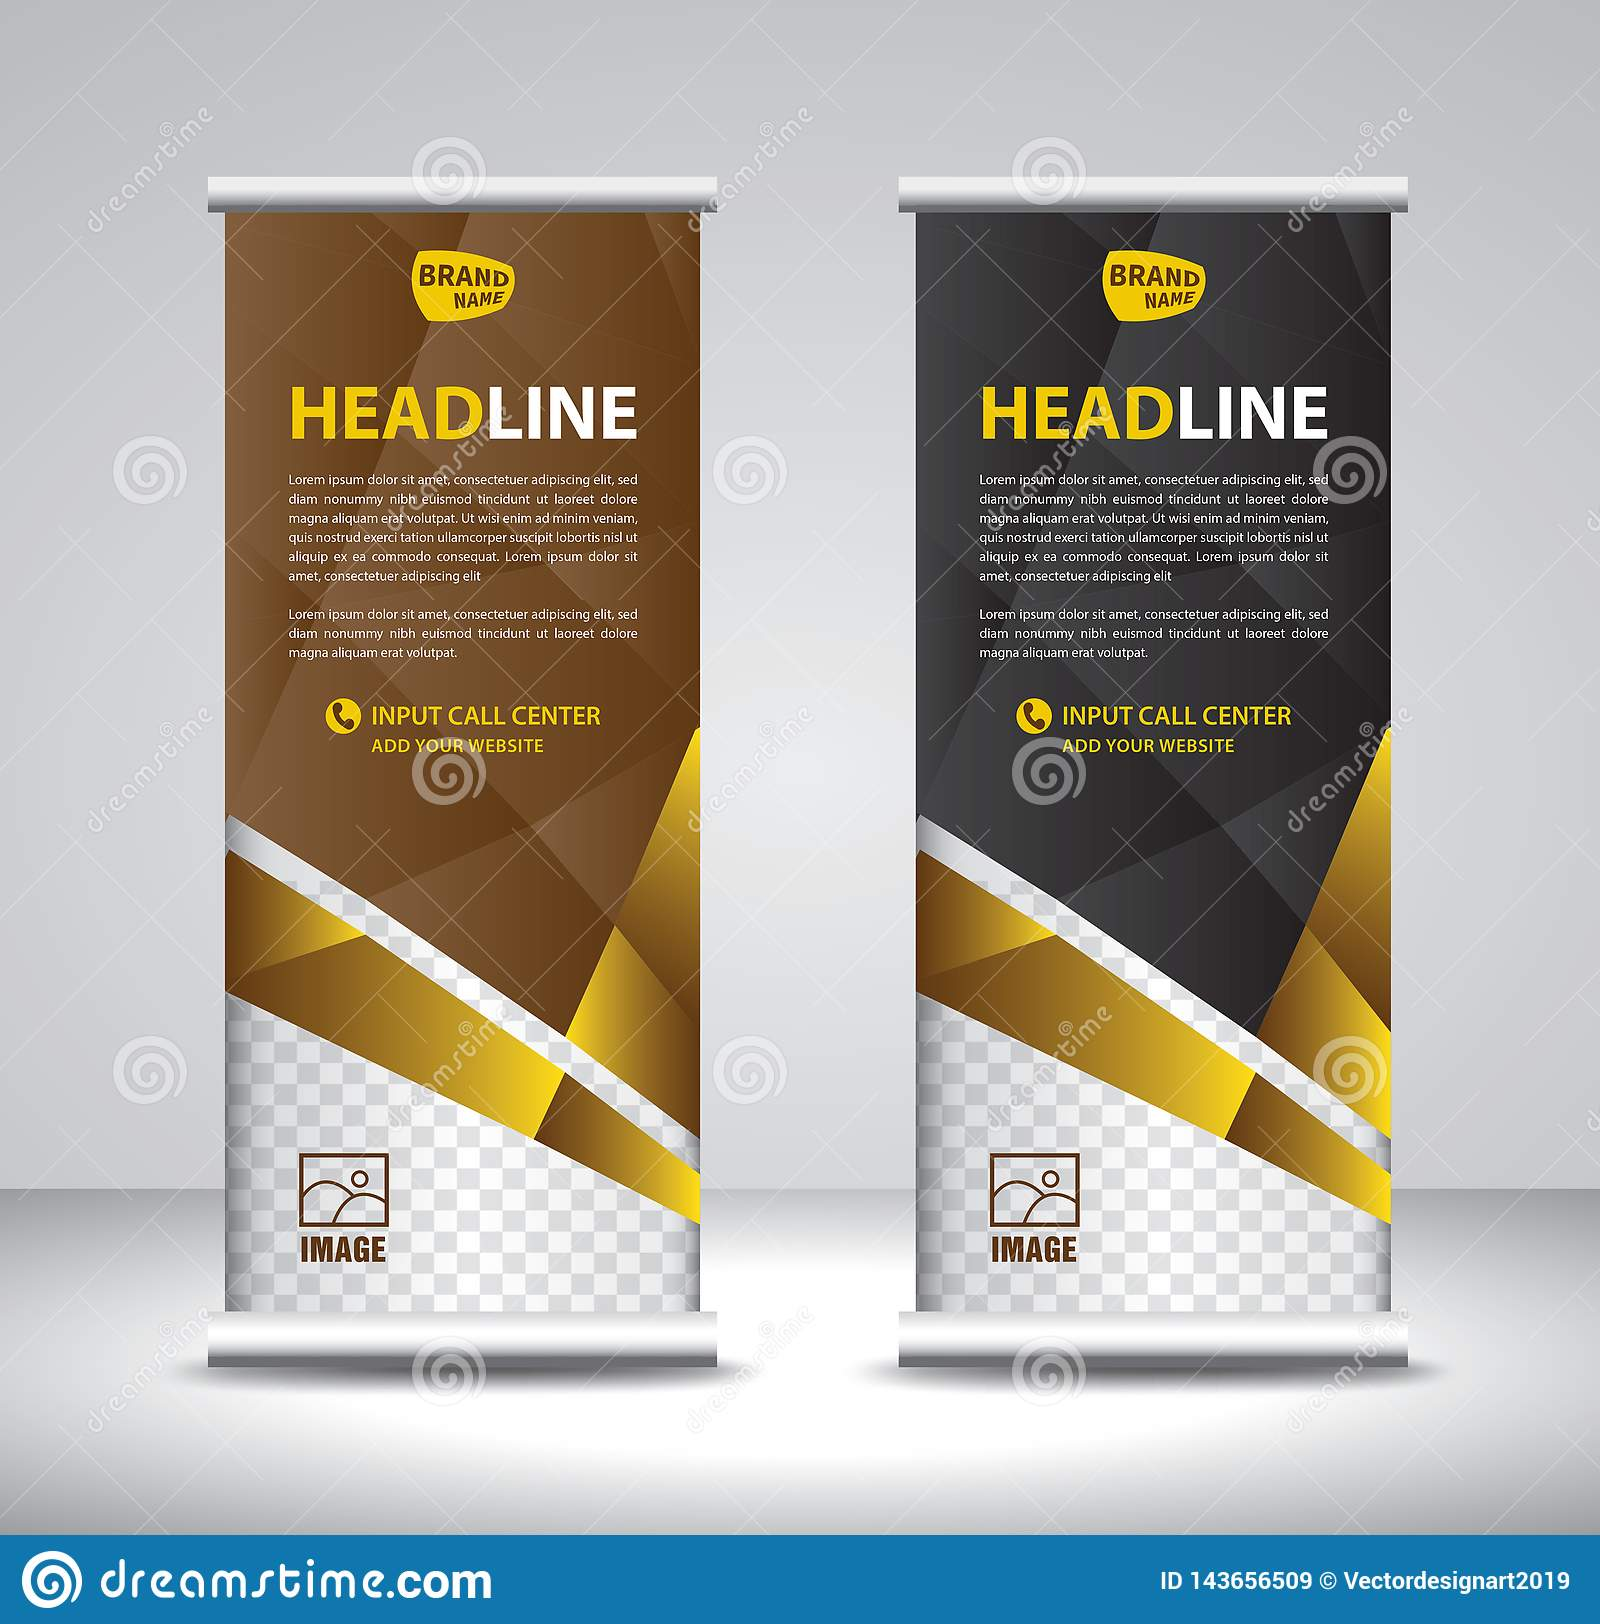 Exhibition Stand Poster Design : Roll up banner template vector banner stand exhibition design